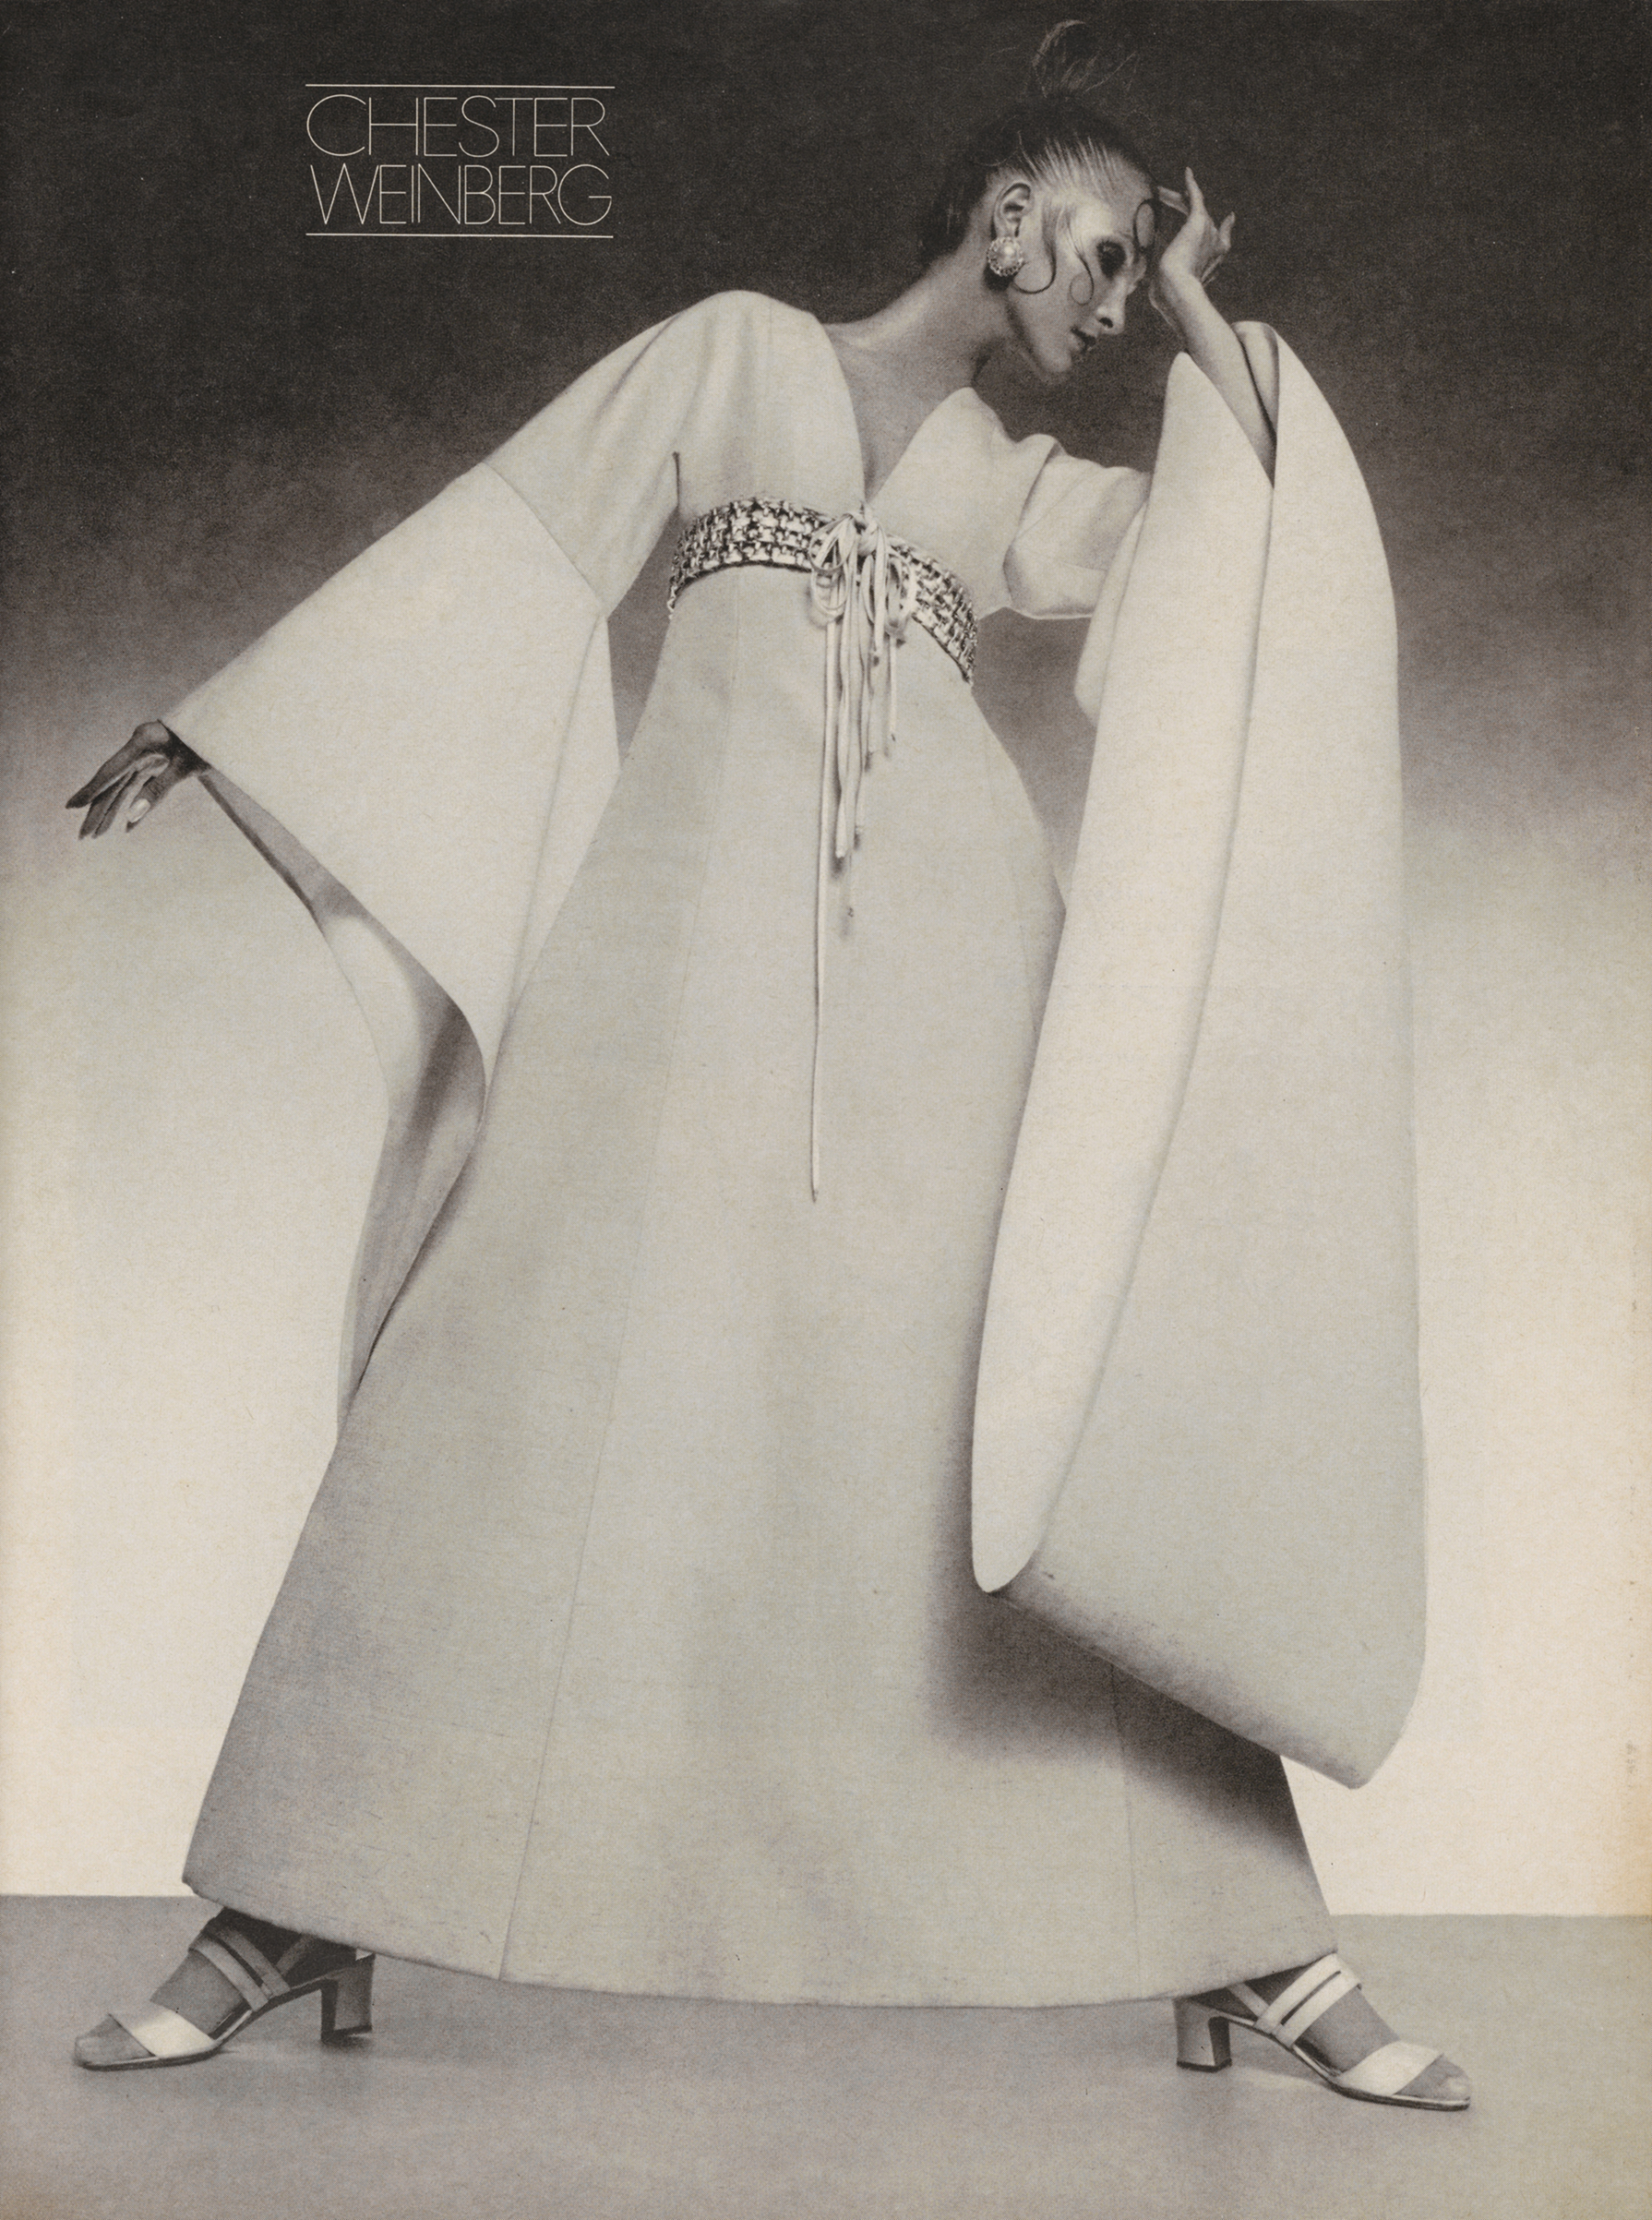 Advertisement for Chester Weinberg, published in Vogue, February 1, 1969.